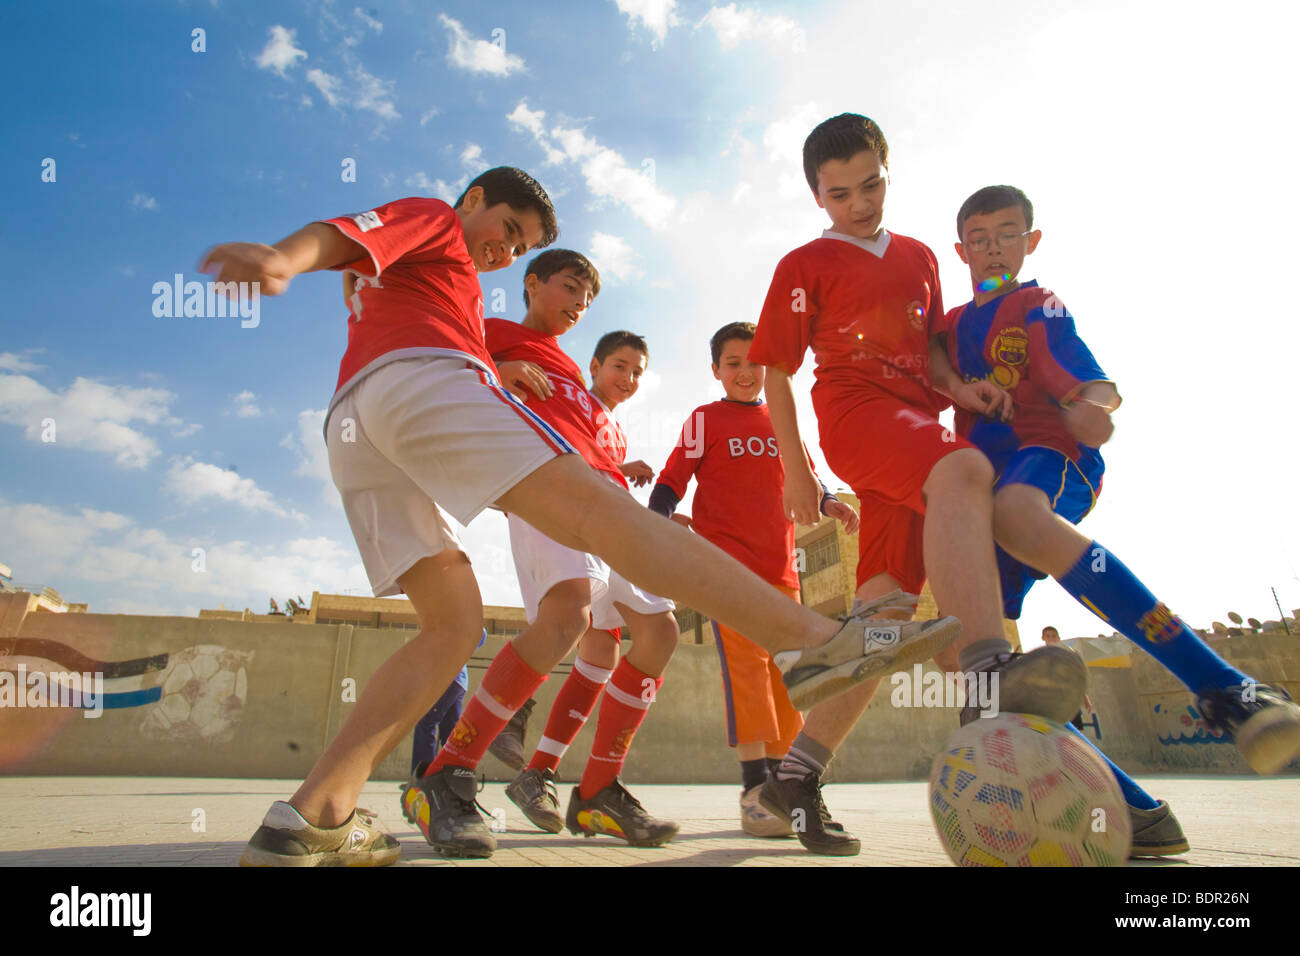 Children playing soccer . - Stock Image